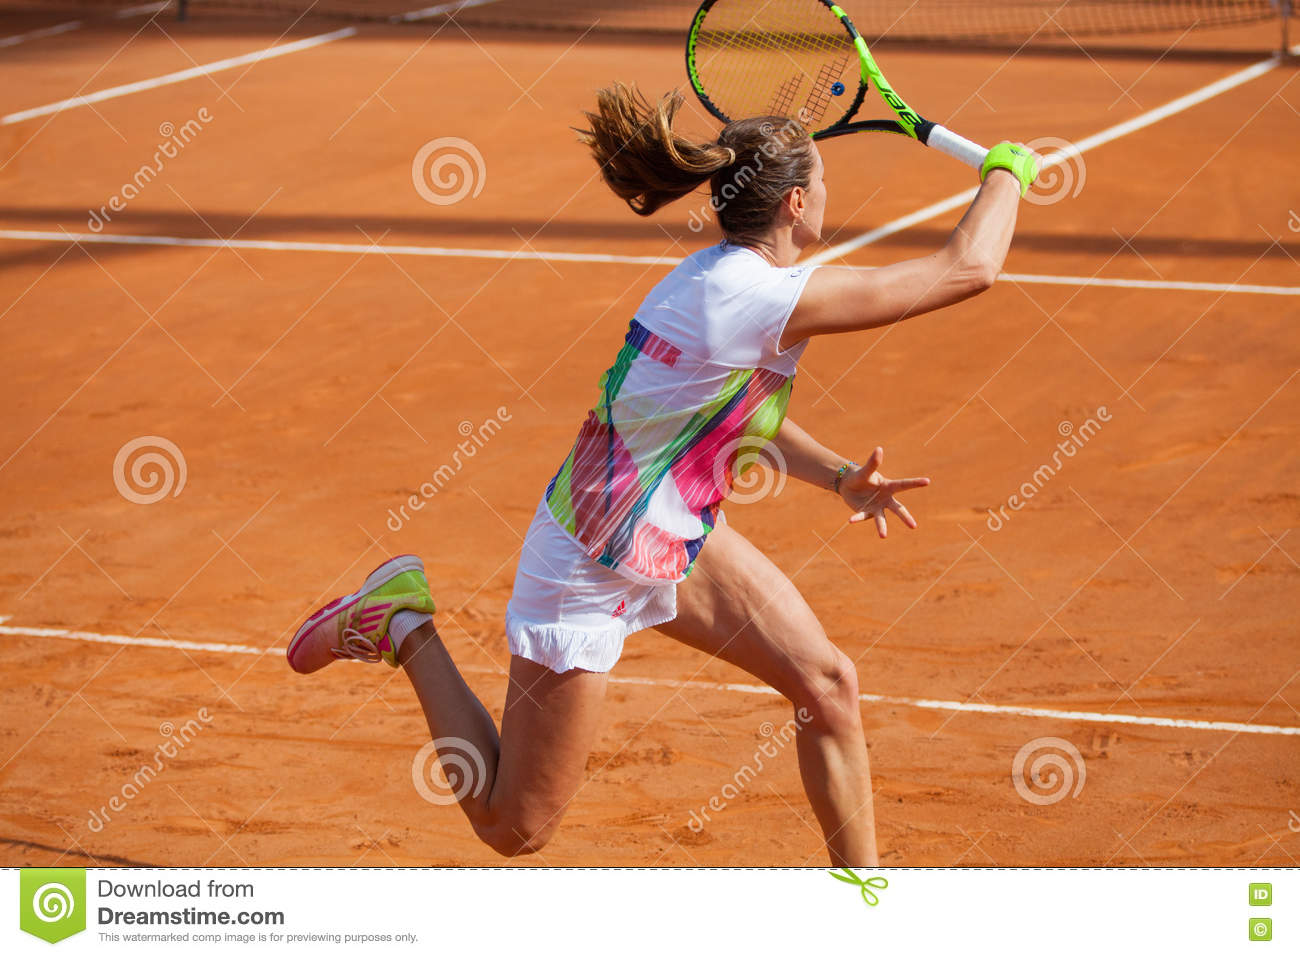 Woman tennis player in action. With racket in hand.